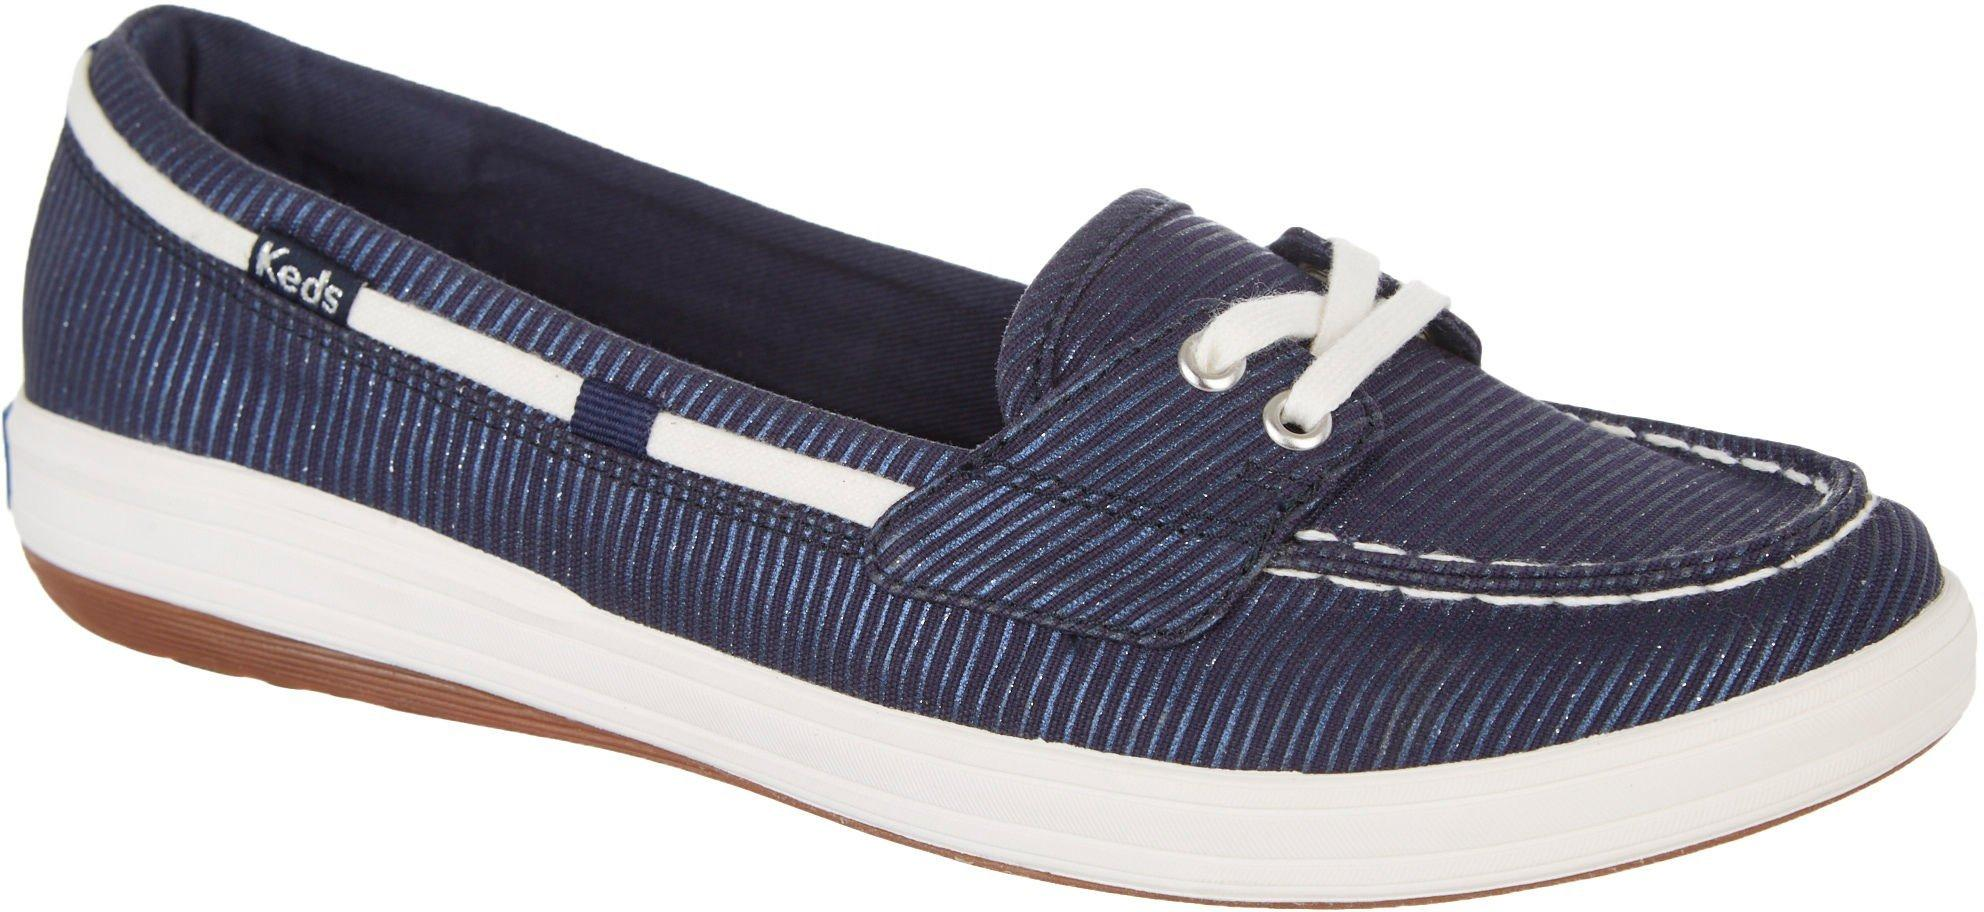 Deals on Keds Womens Glimmer Stripe Canvas Boat Shoes